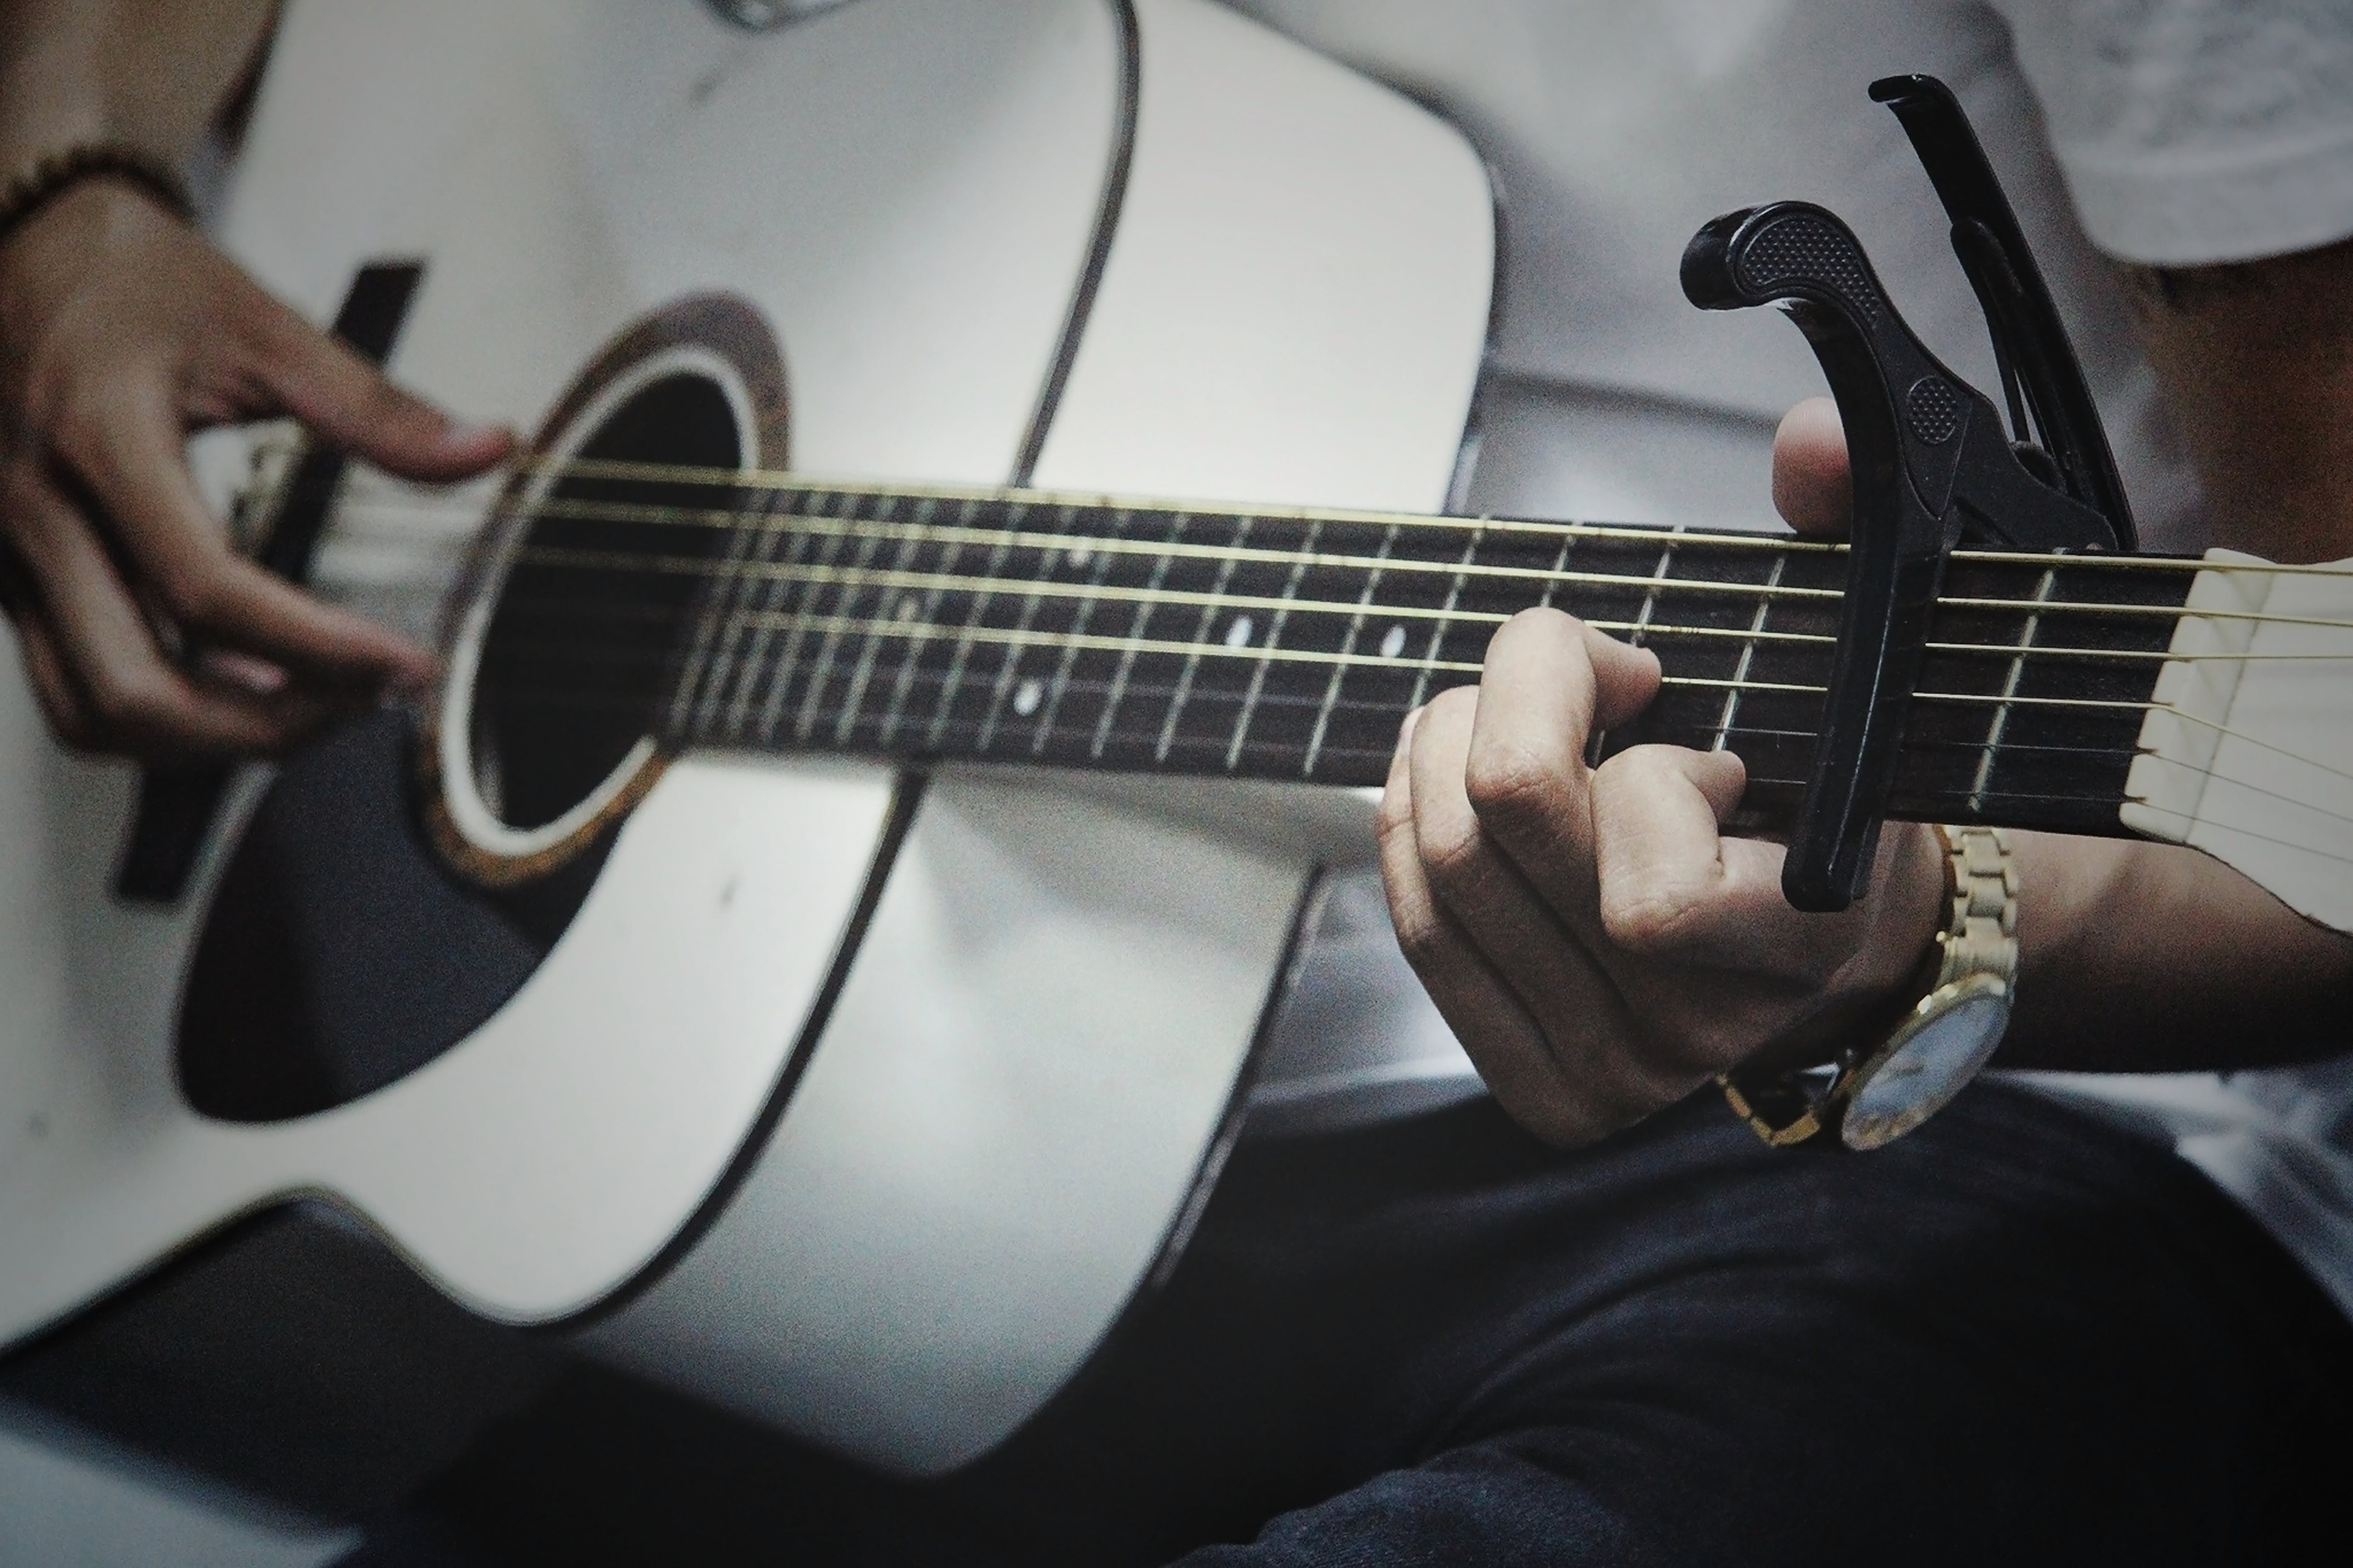 Man Holding a White Dreadnought Acoustic Guitar